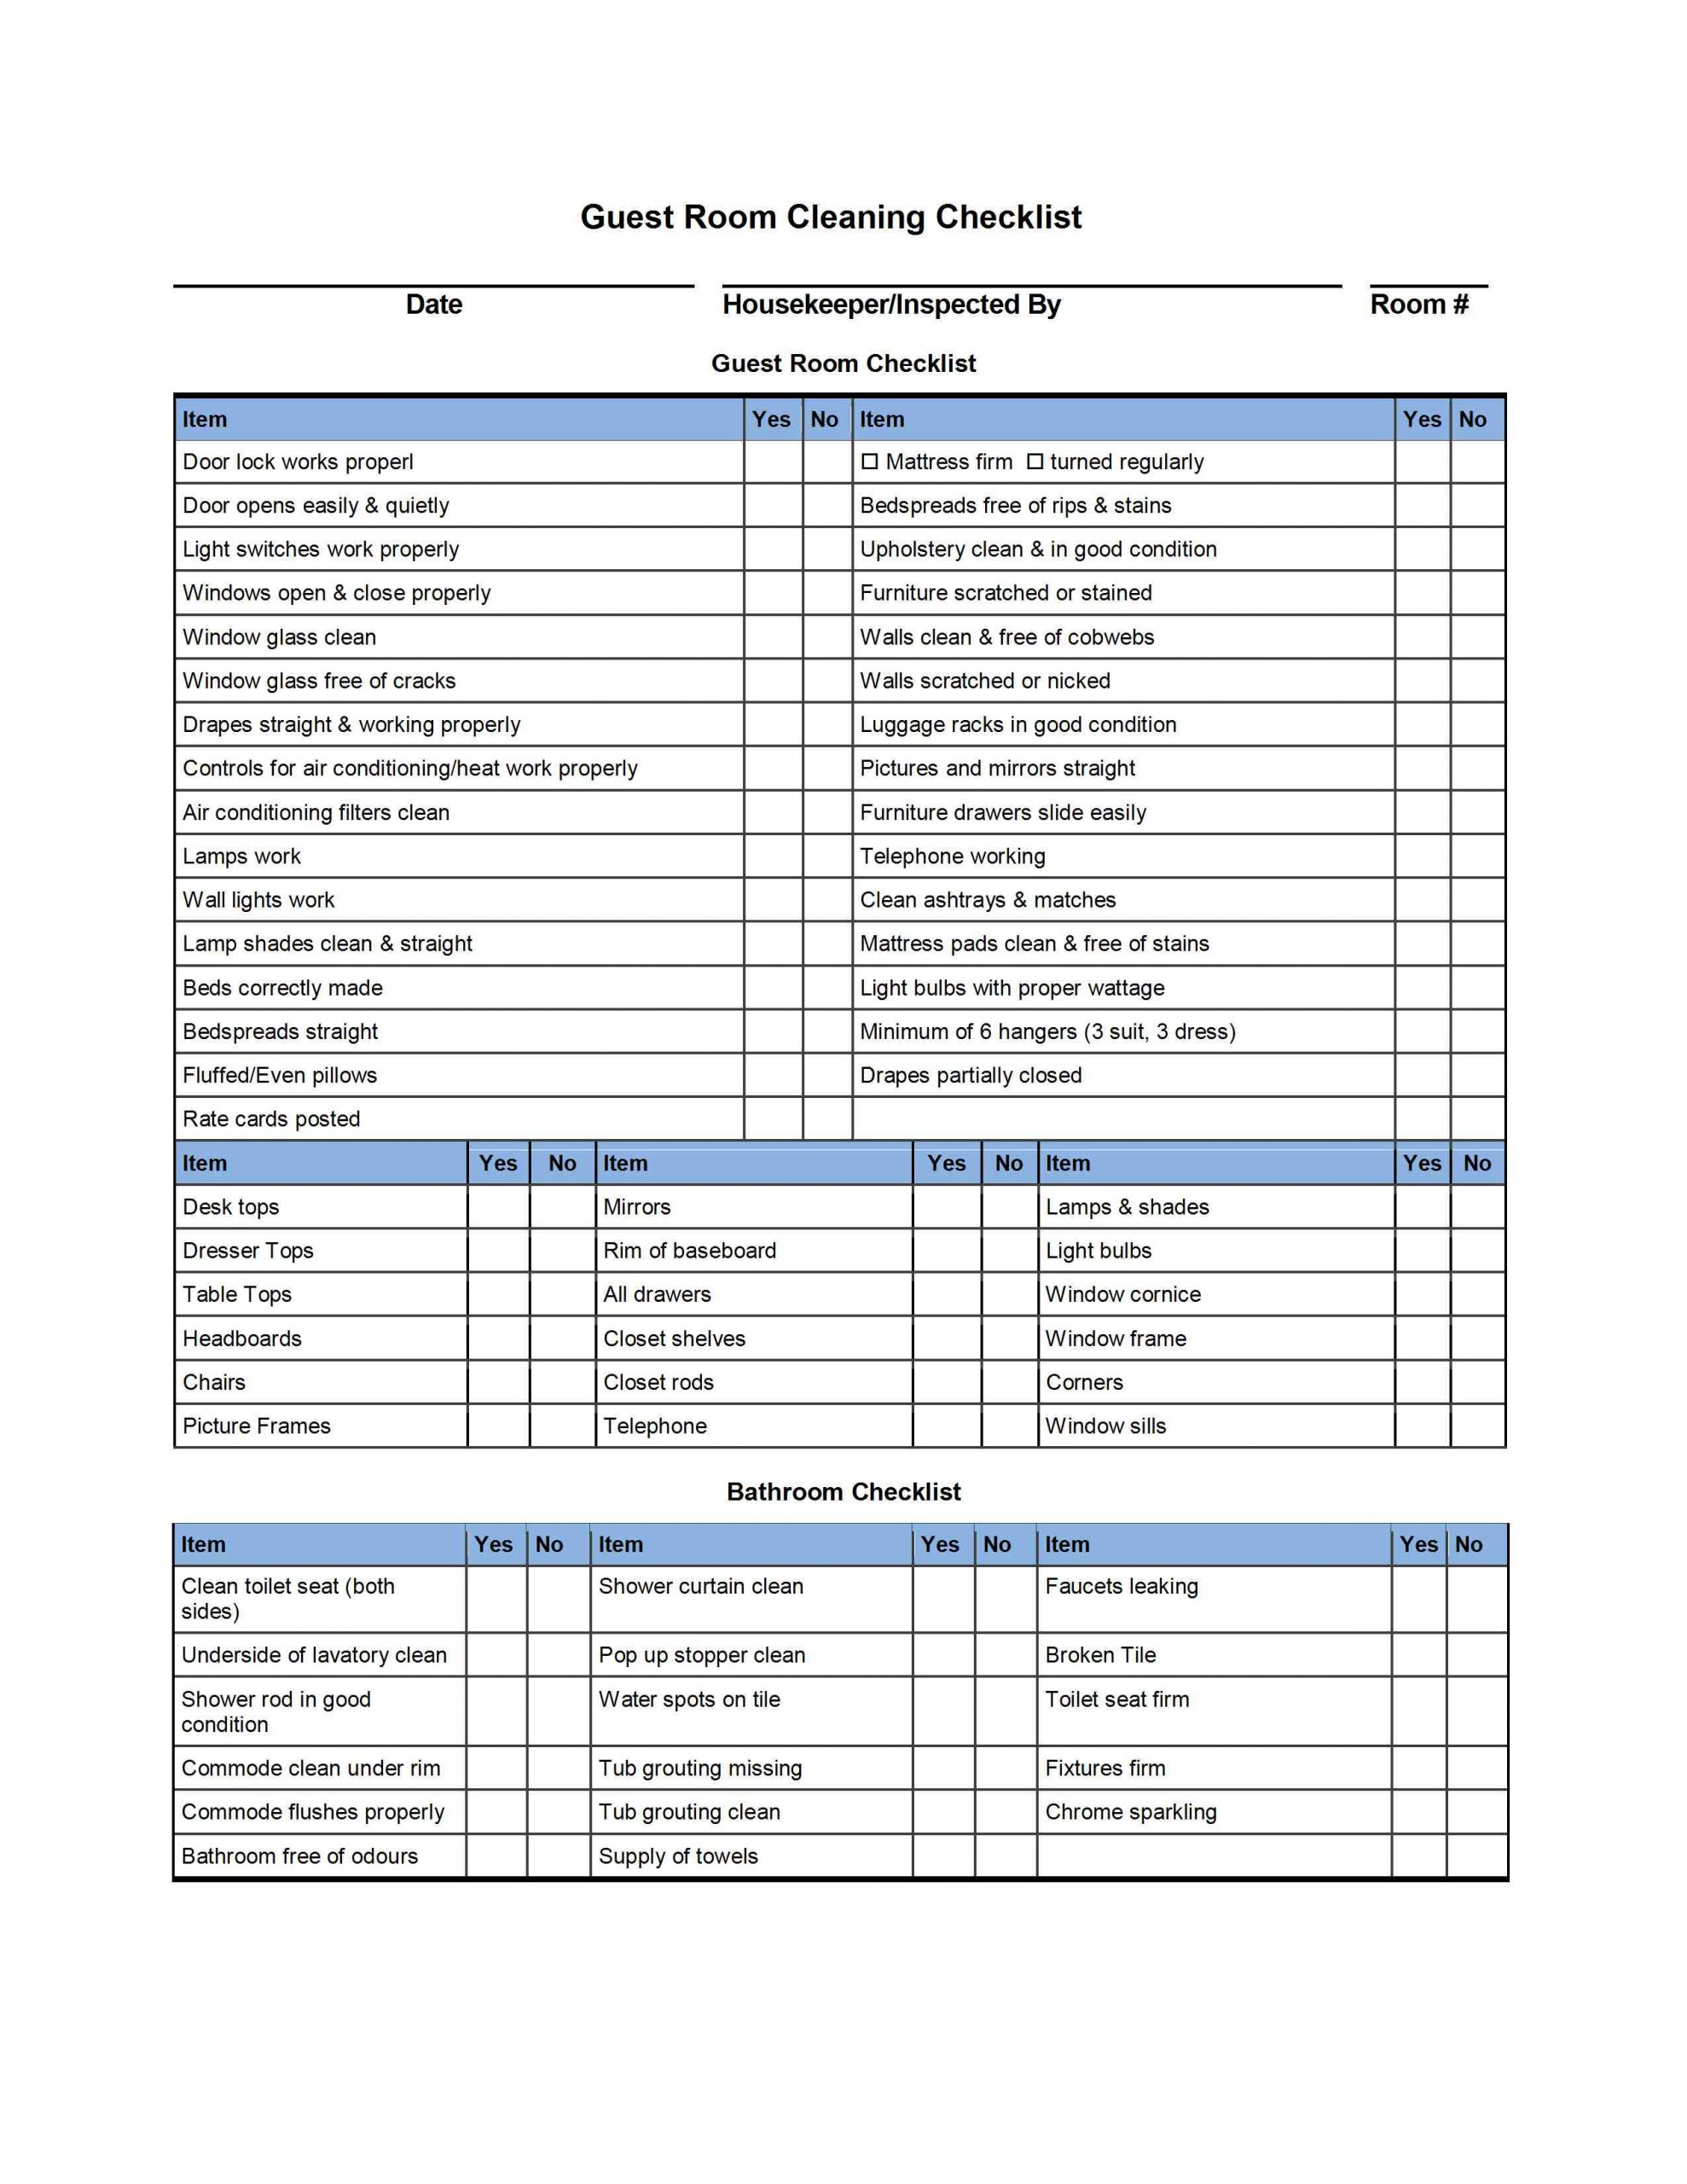 Bathroom Cleaning Checklist Template